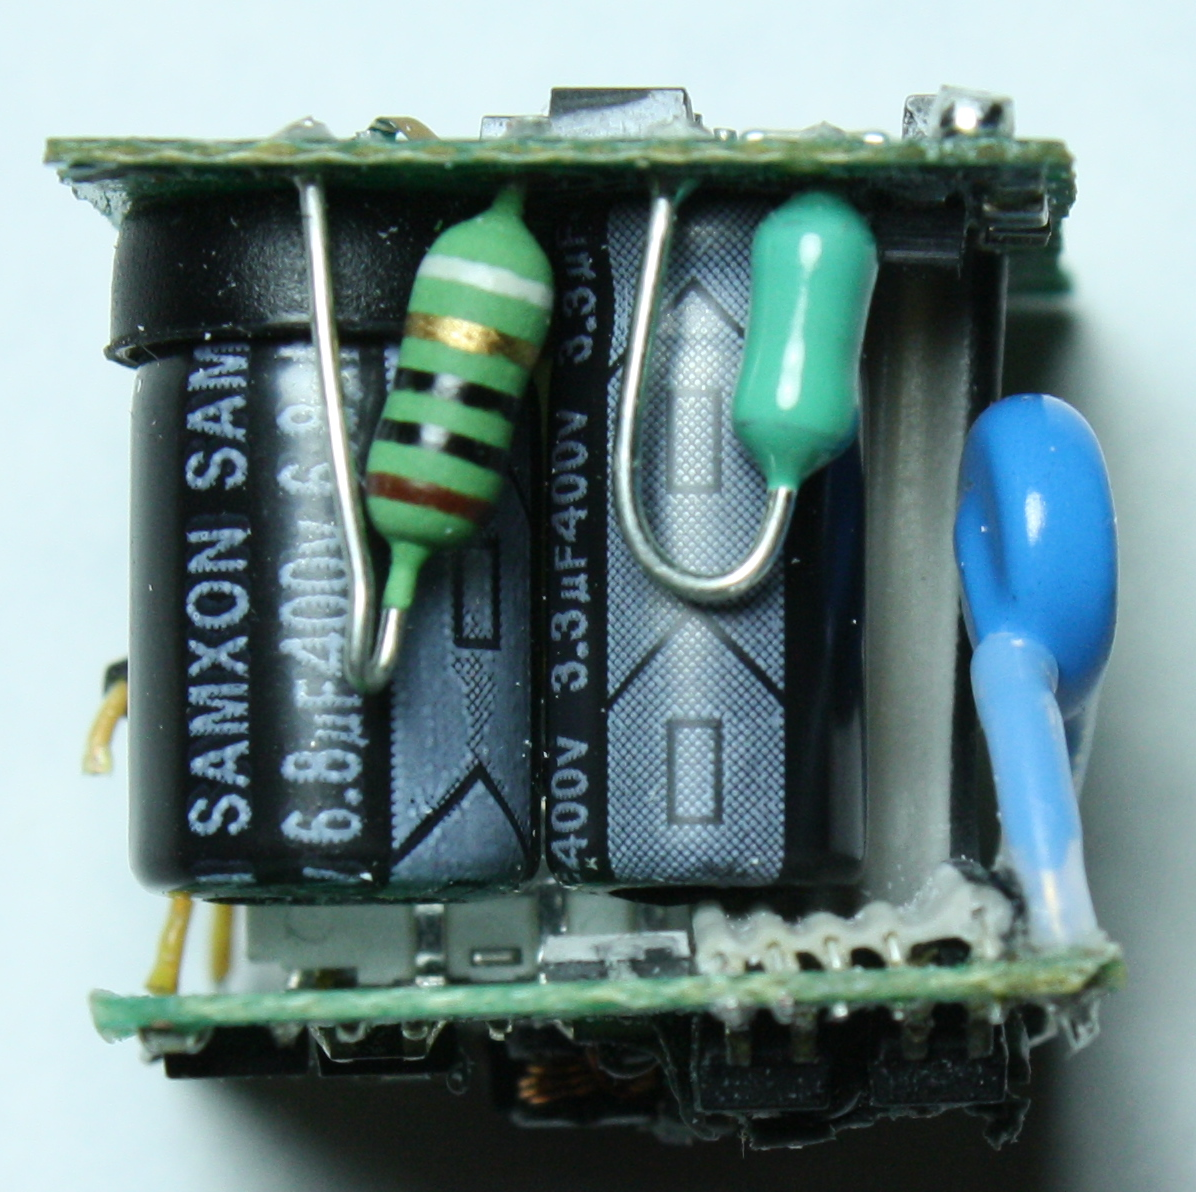 Apple Iphone Charger Teardown Quality In A Tiny Expensive Package Resistors And Capacitors Circuit Capacitor Showing The Fusible Resistor Striped Inductor Green